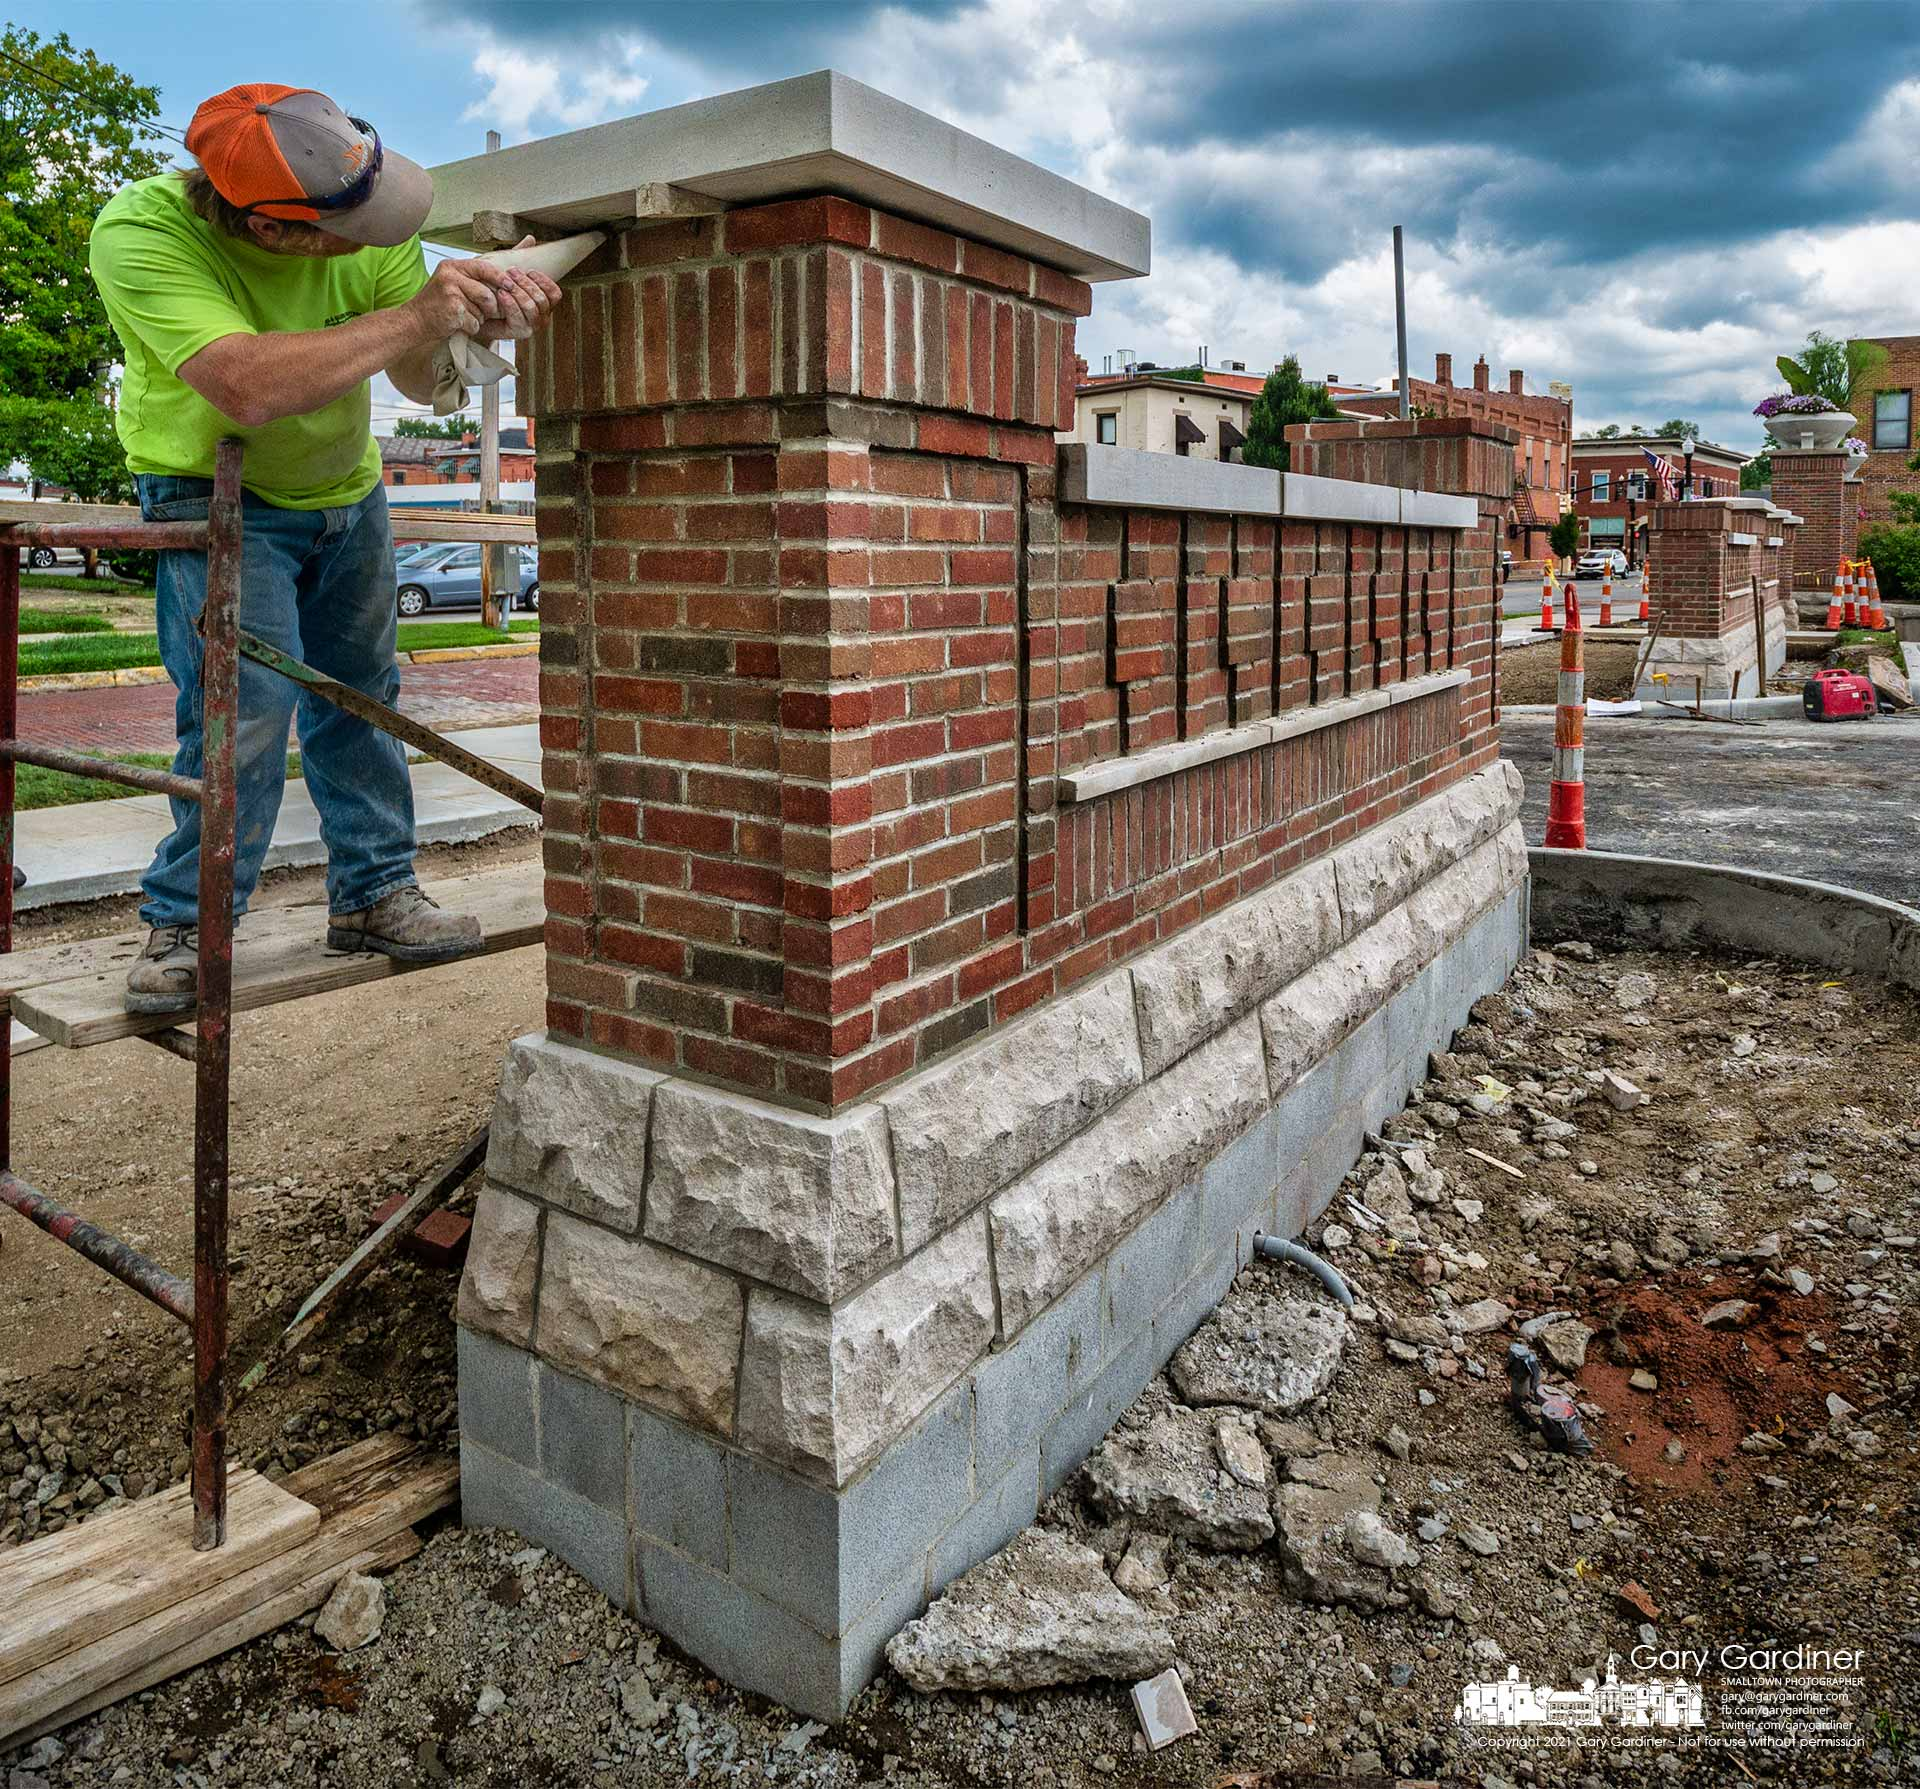 A brick mason squeezes fast-drying mortar into the gaps between the brick post and a concrete platform lowered onto it at the entrance to the new parking lot behind city hall. My Final Photo for July 14, 2021.